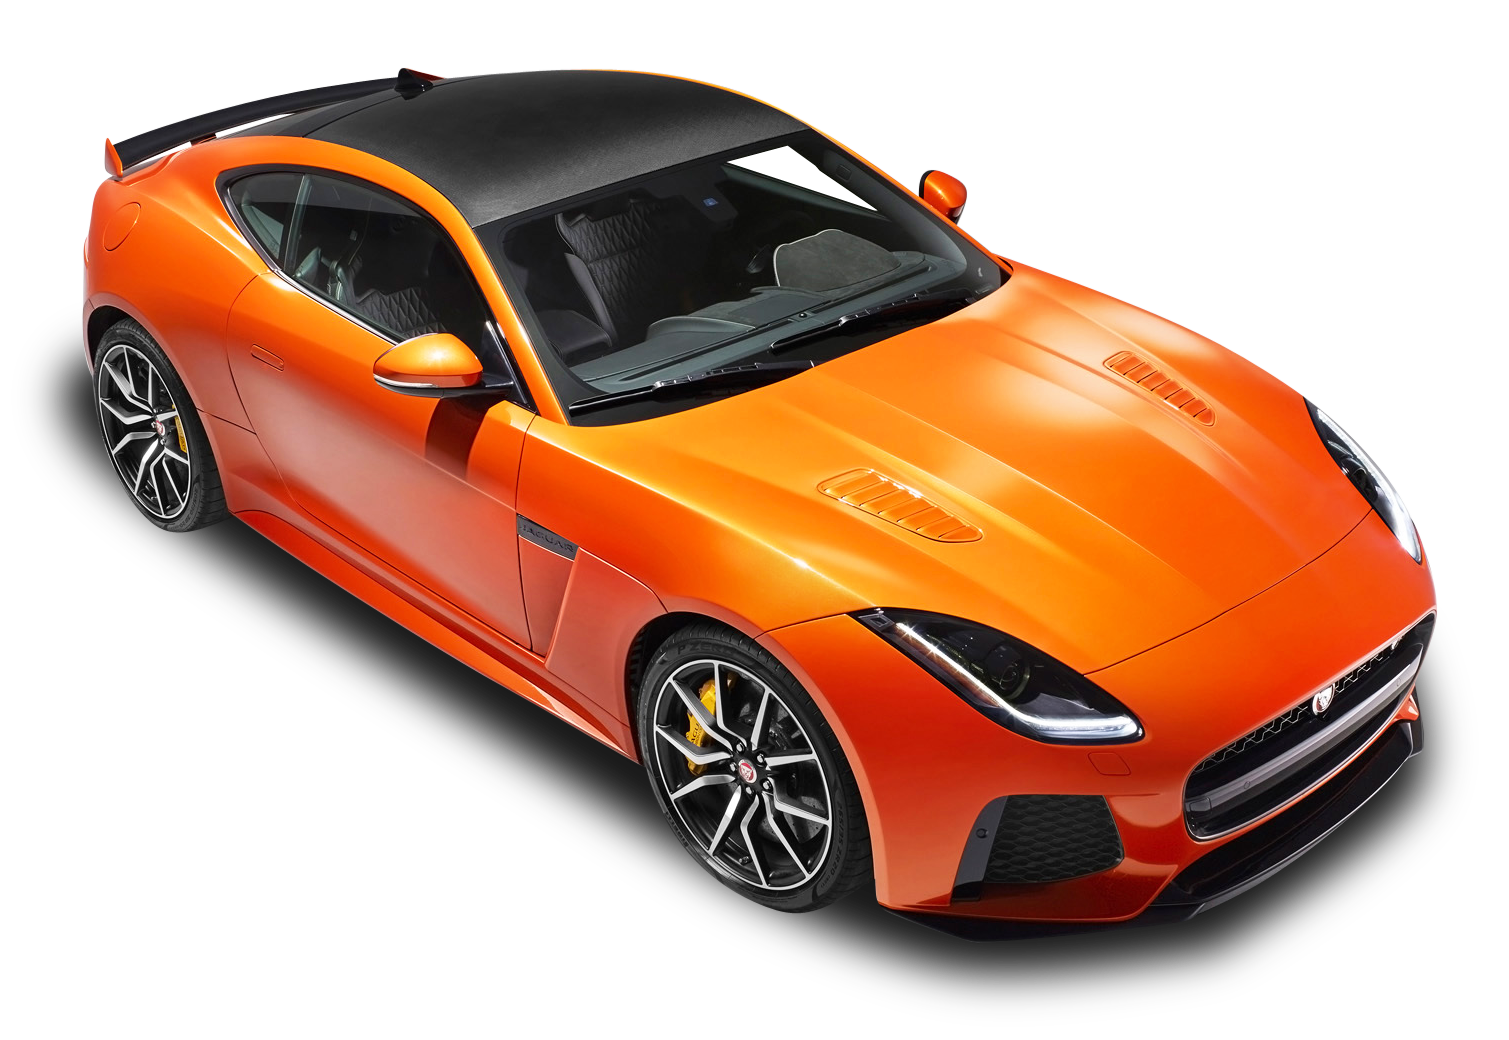 Orange Jaguar F Type SVR Coupe Top View Car